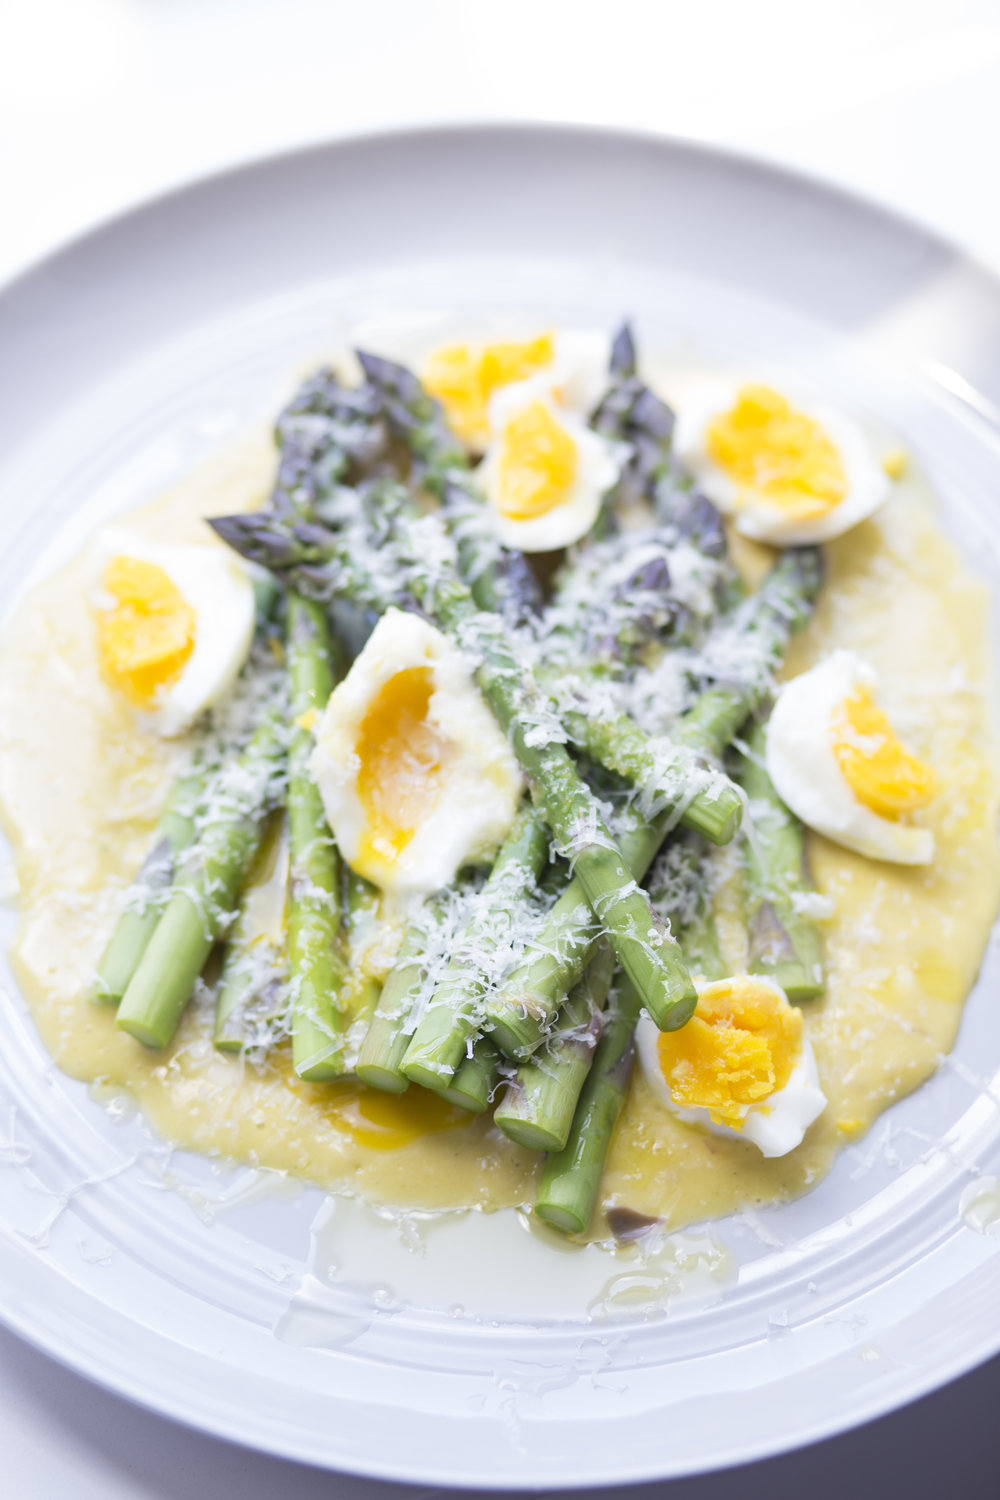 Blanched Asparagus with Eggs & Aioli